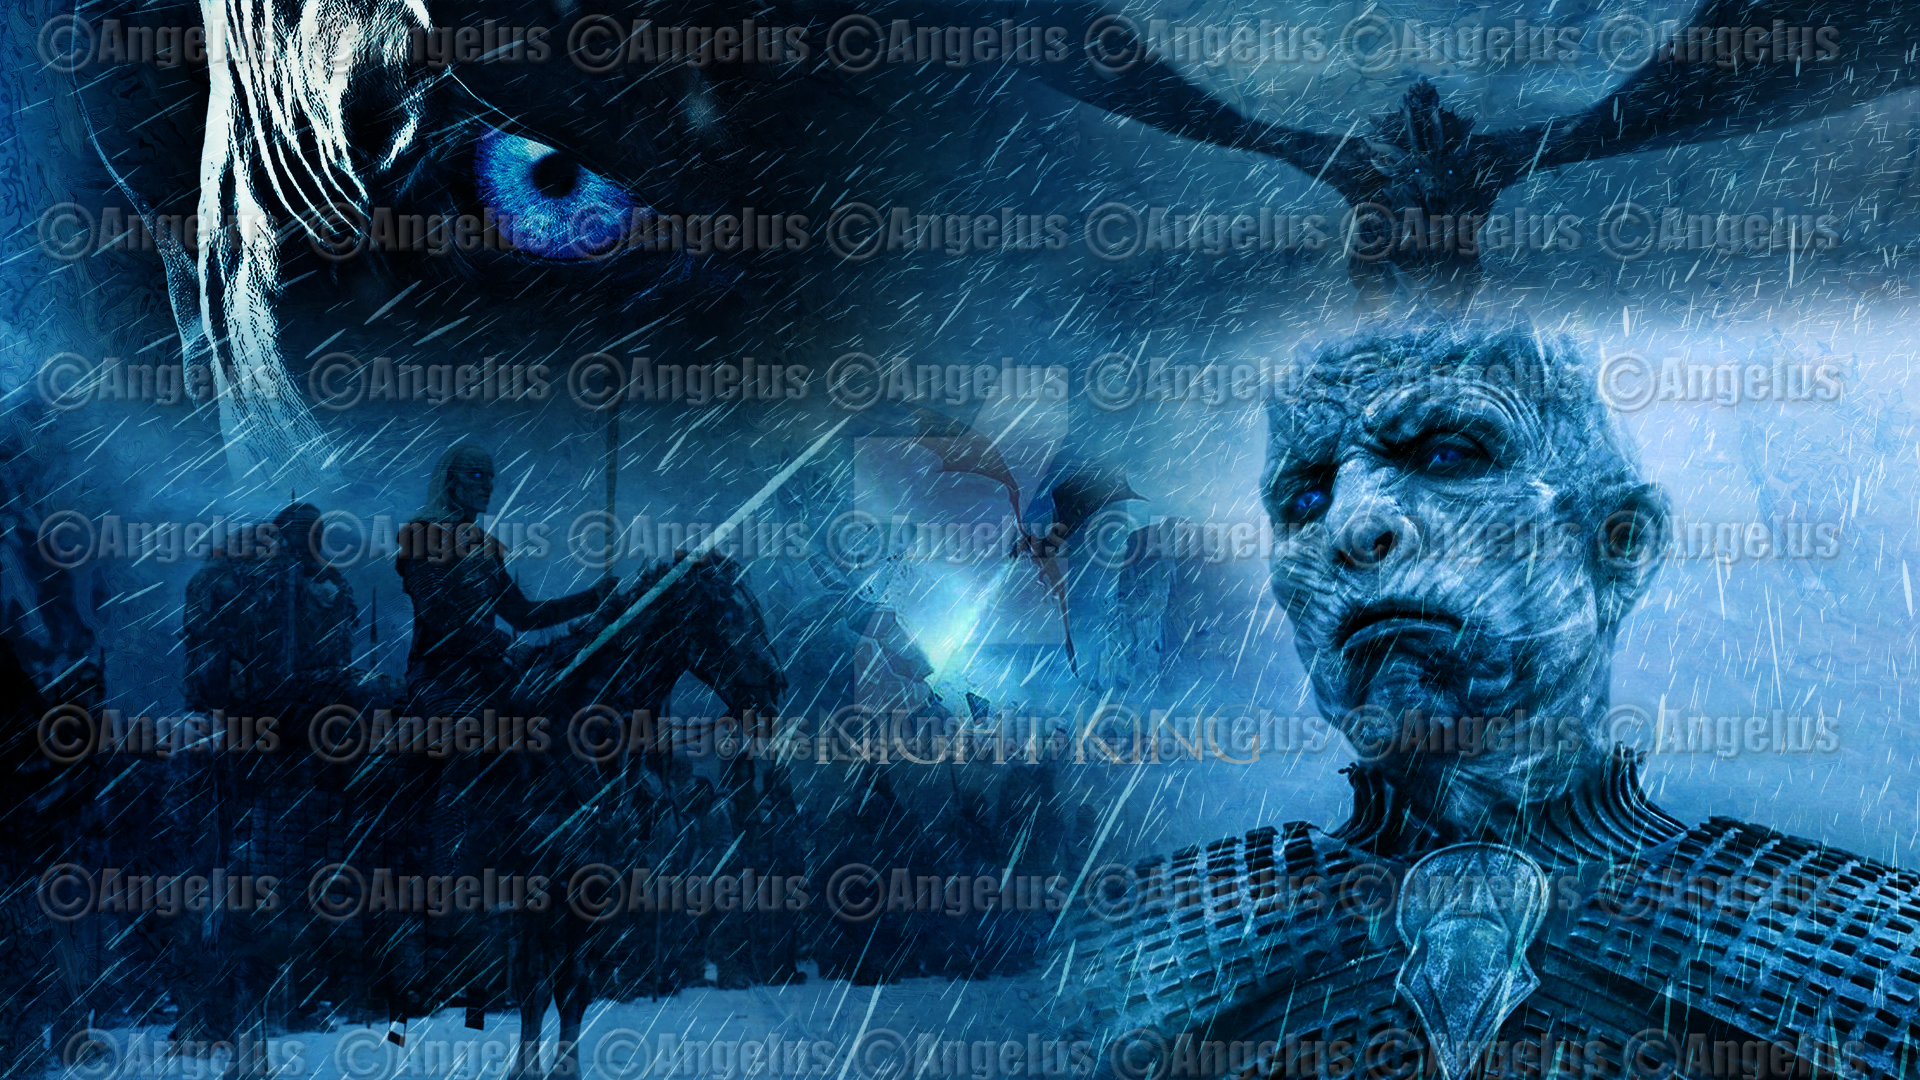 The Night King Game Of Thrones Poster Wallpaper By Angelus23 On